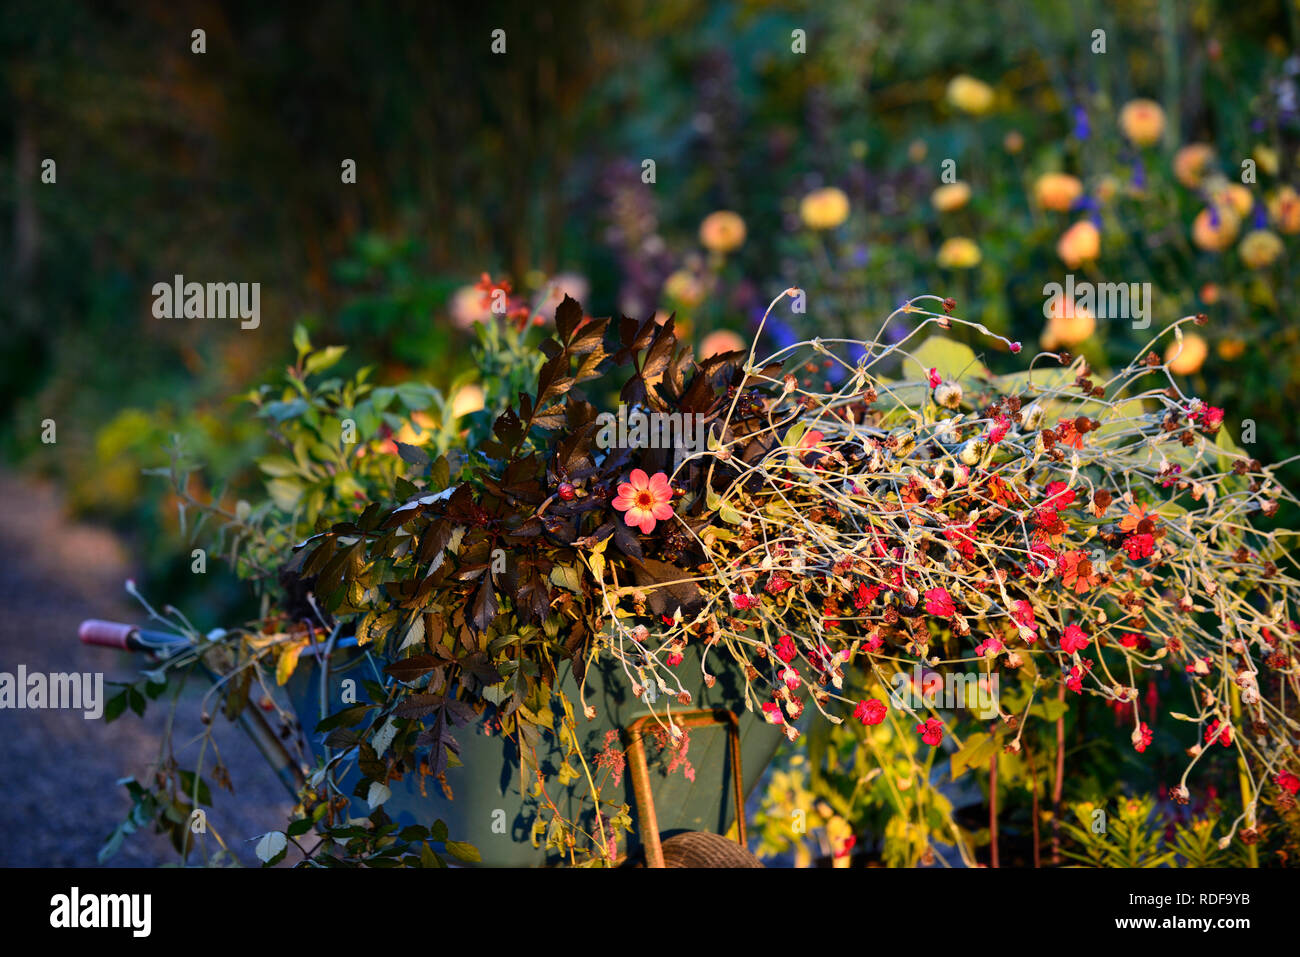 sunrise,dawn light,wheelbarrow,garden waste,garden clippings,trimmings,tidy,tidying,pruning,dead heading,flowers,flowering,dahlias,lychnis coronaria,t - Stock Image